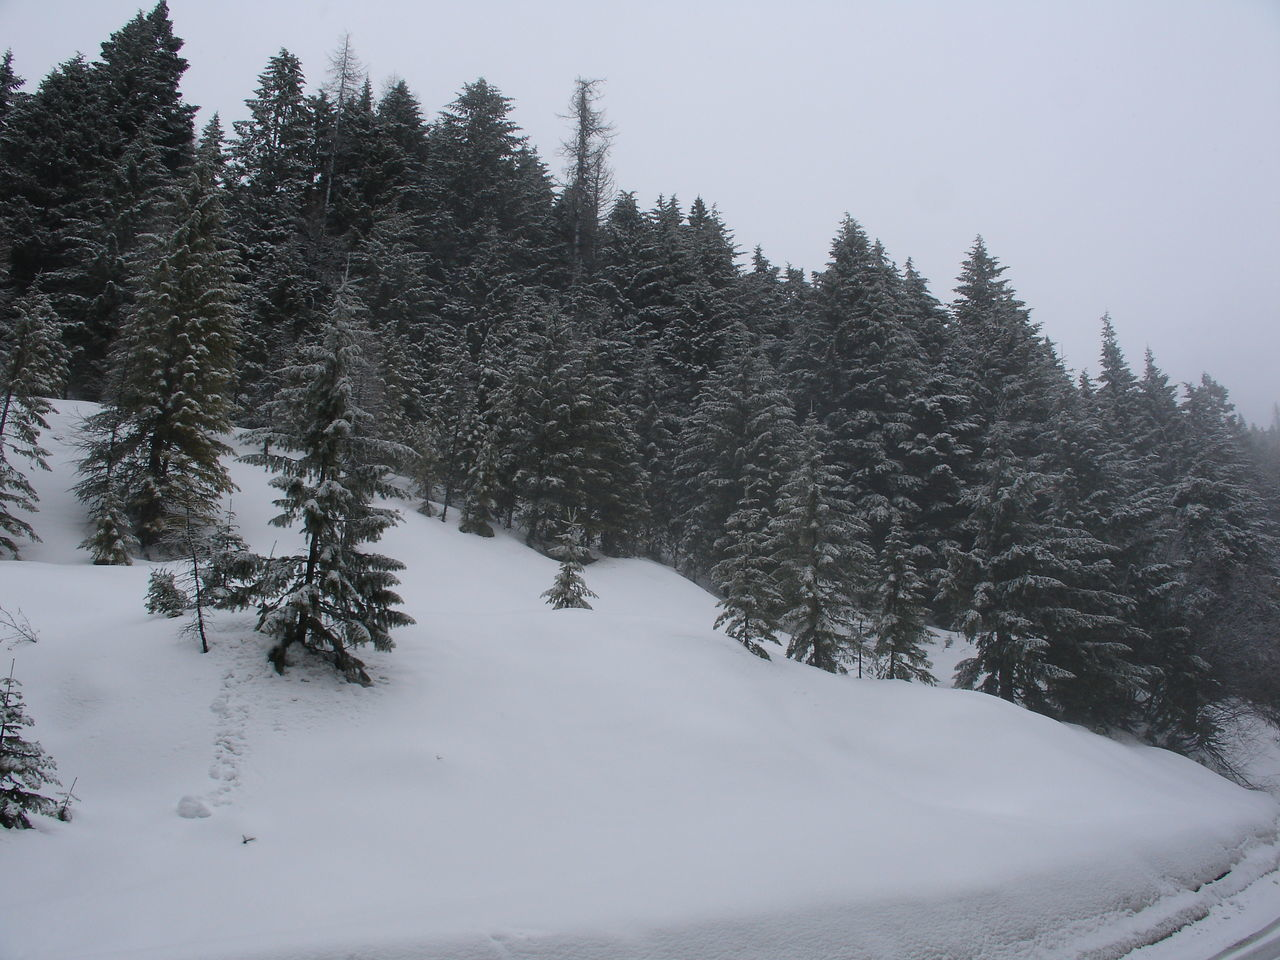 winter, snow, tree, cold temperature, nature, tranquility, beauty in nature, tranquil scene, no people, outdoors, forest, scenics, landscape, day, sky